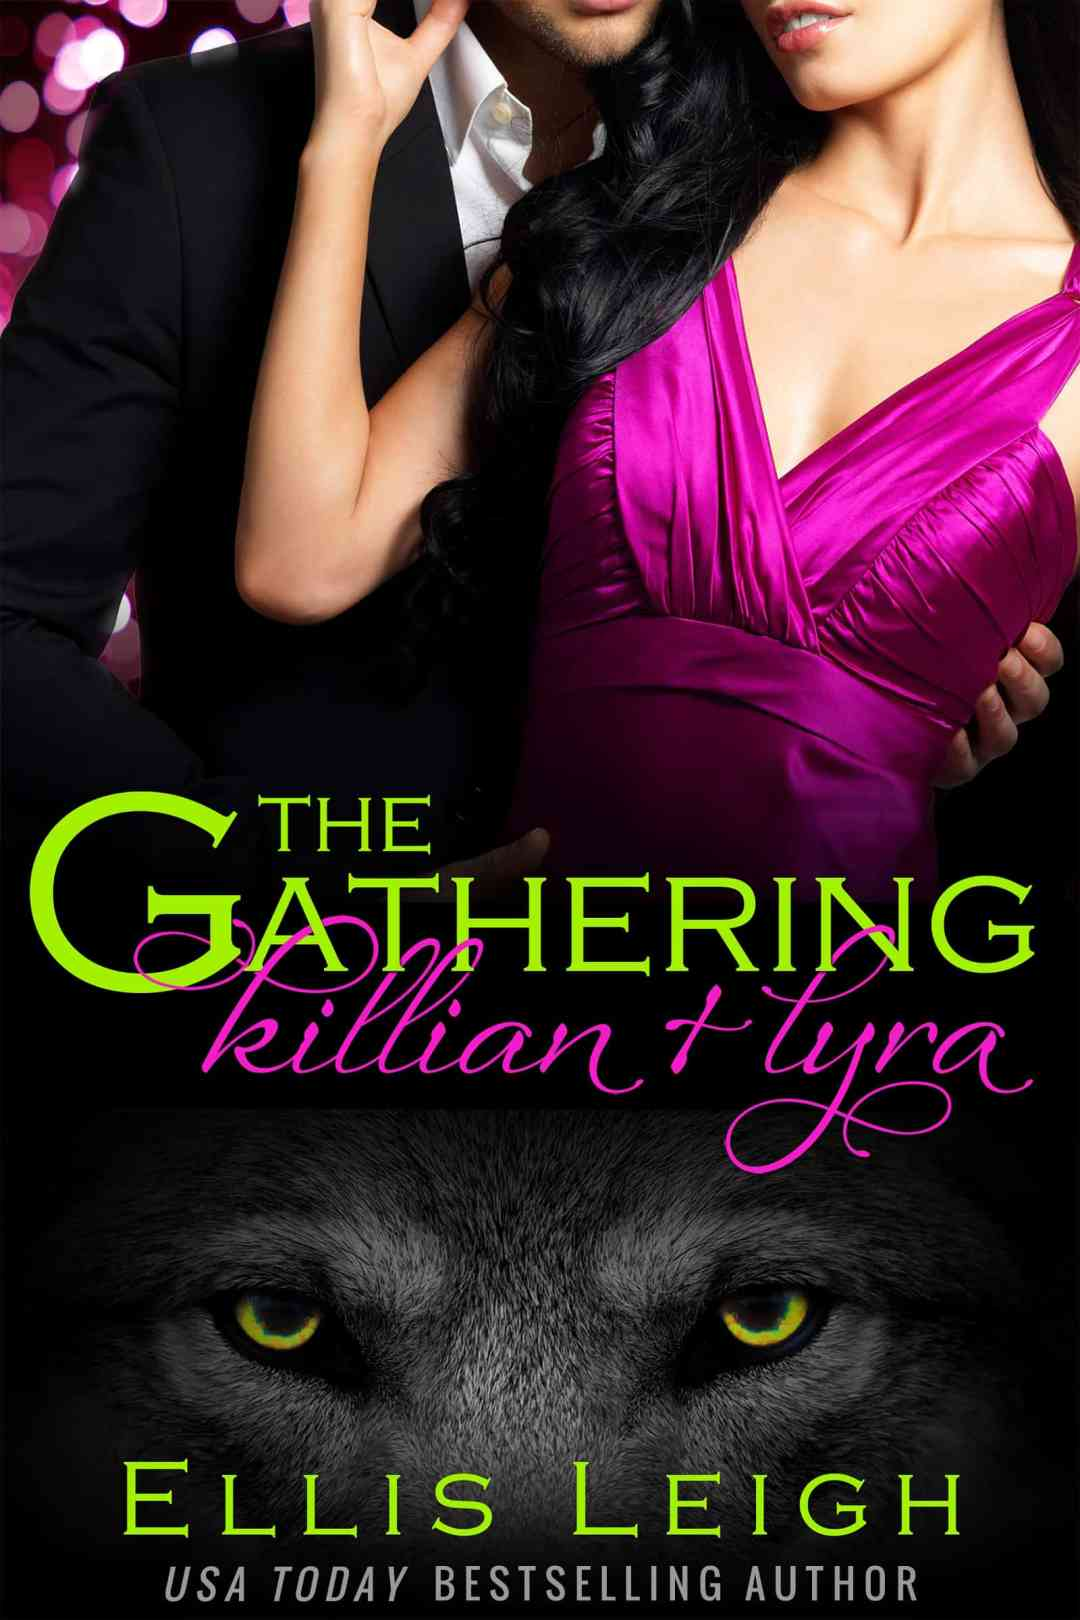 The Gathering: Killian and Lyra